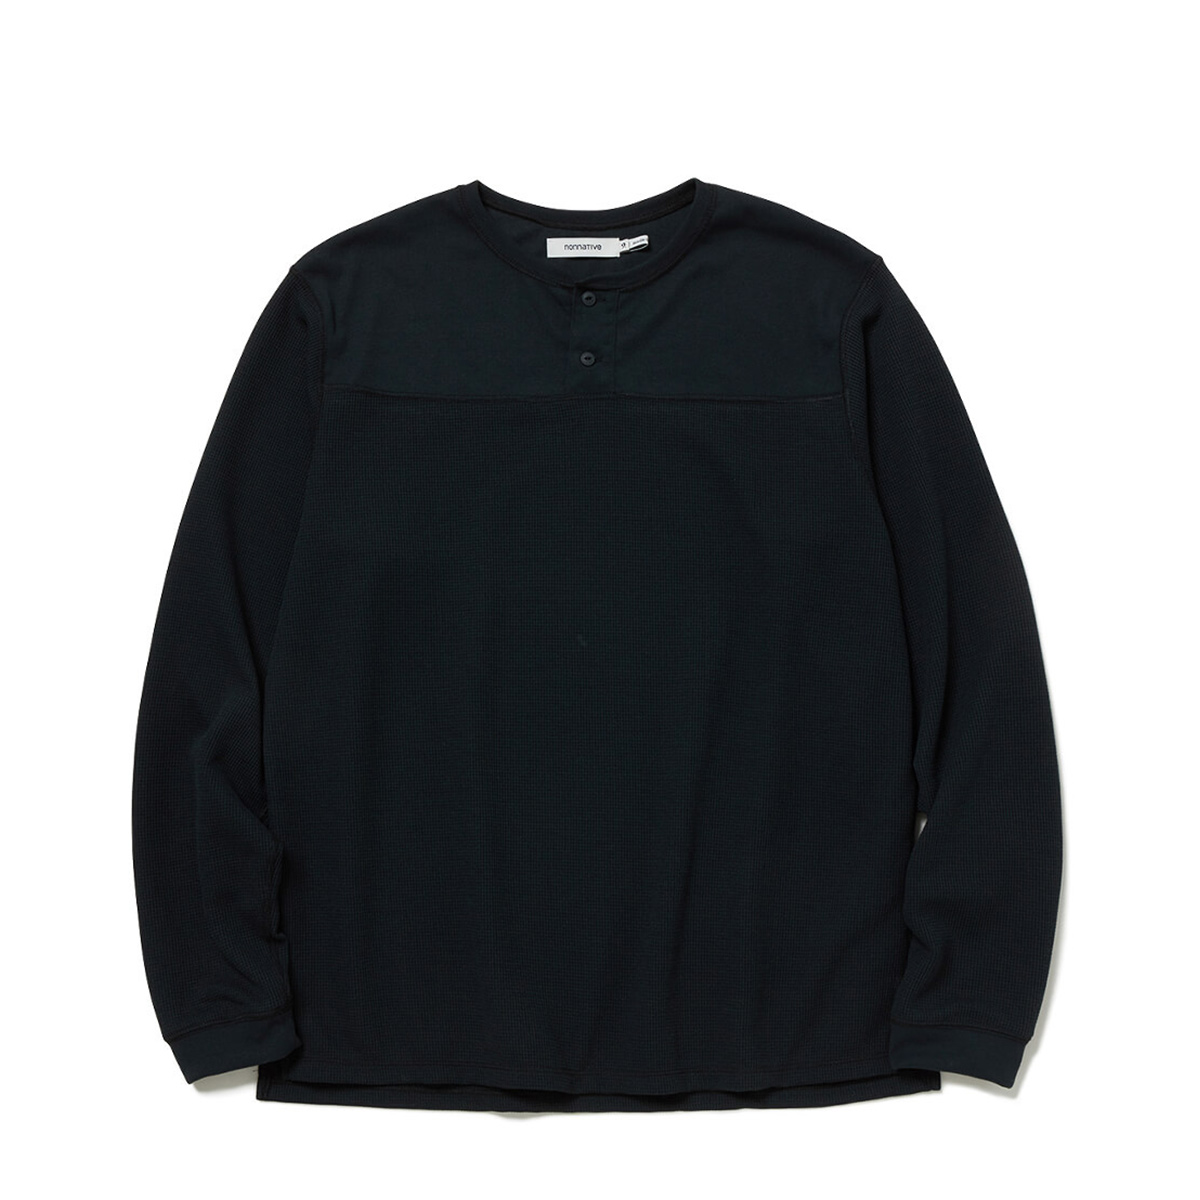 nonnative / TROOPER HENLEY NECK L/S TEE POLY THERMAL (Black)